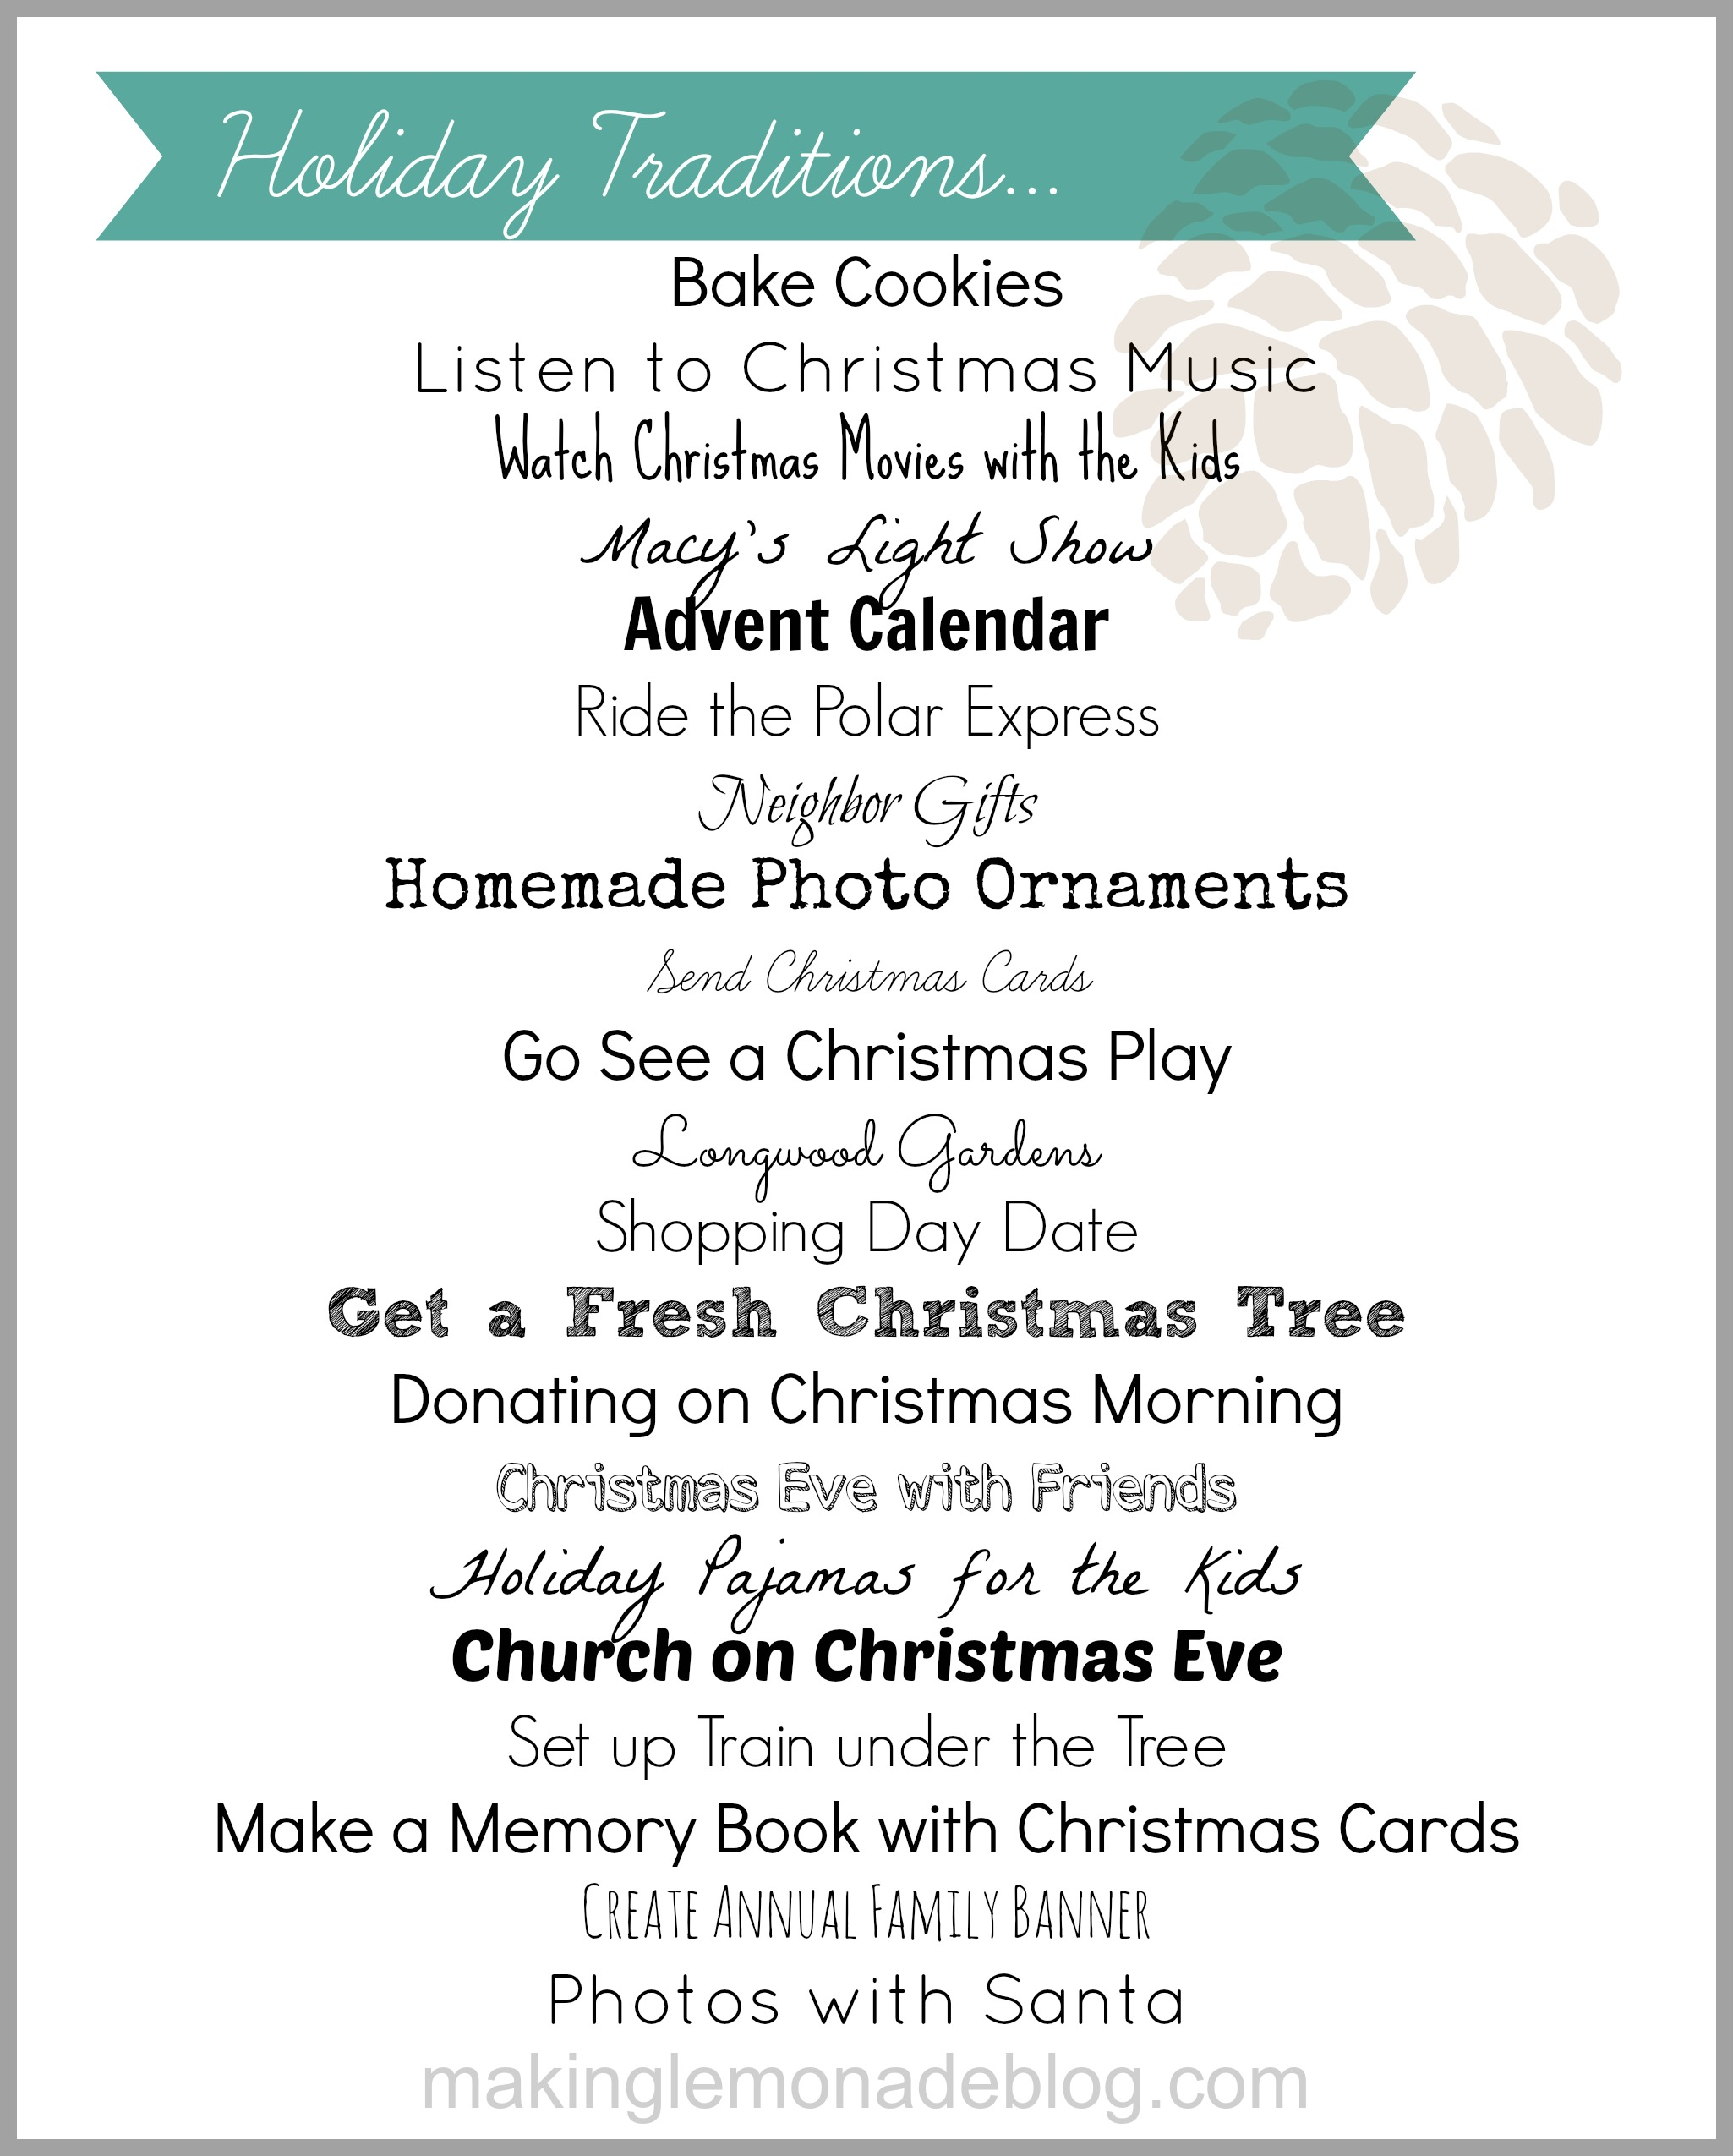 Free Printable List of Holiday Traditions